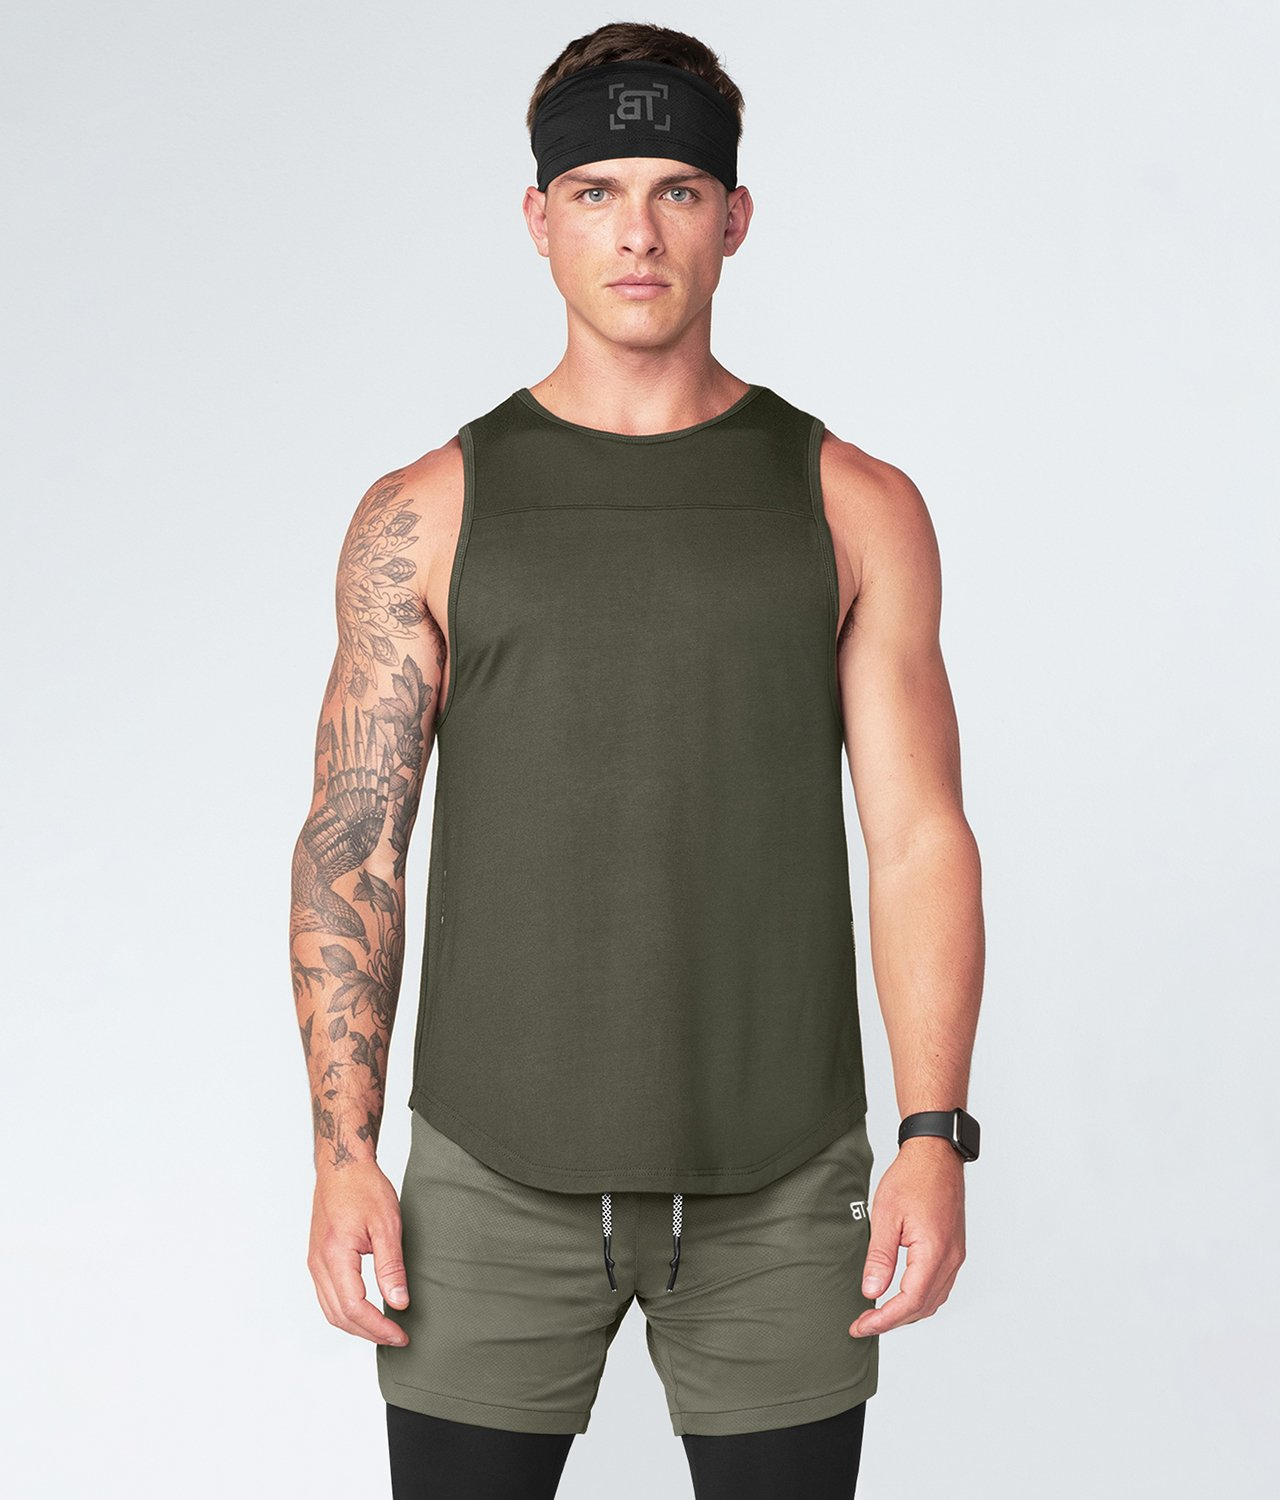 Born Tough United Kingdom Core Fit Extended Front & Back Hems Army Green Gym Workout Tank Top for Men